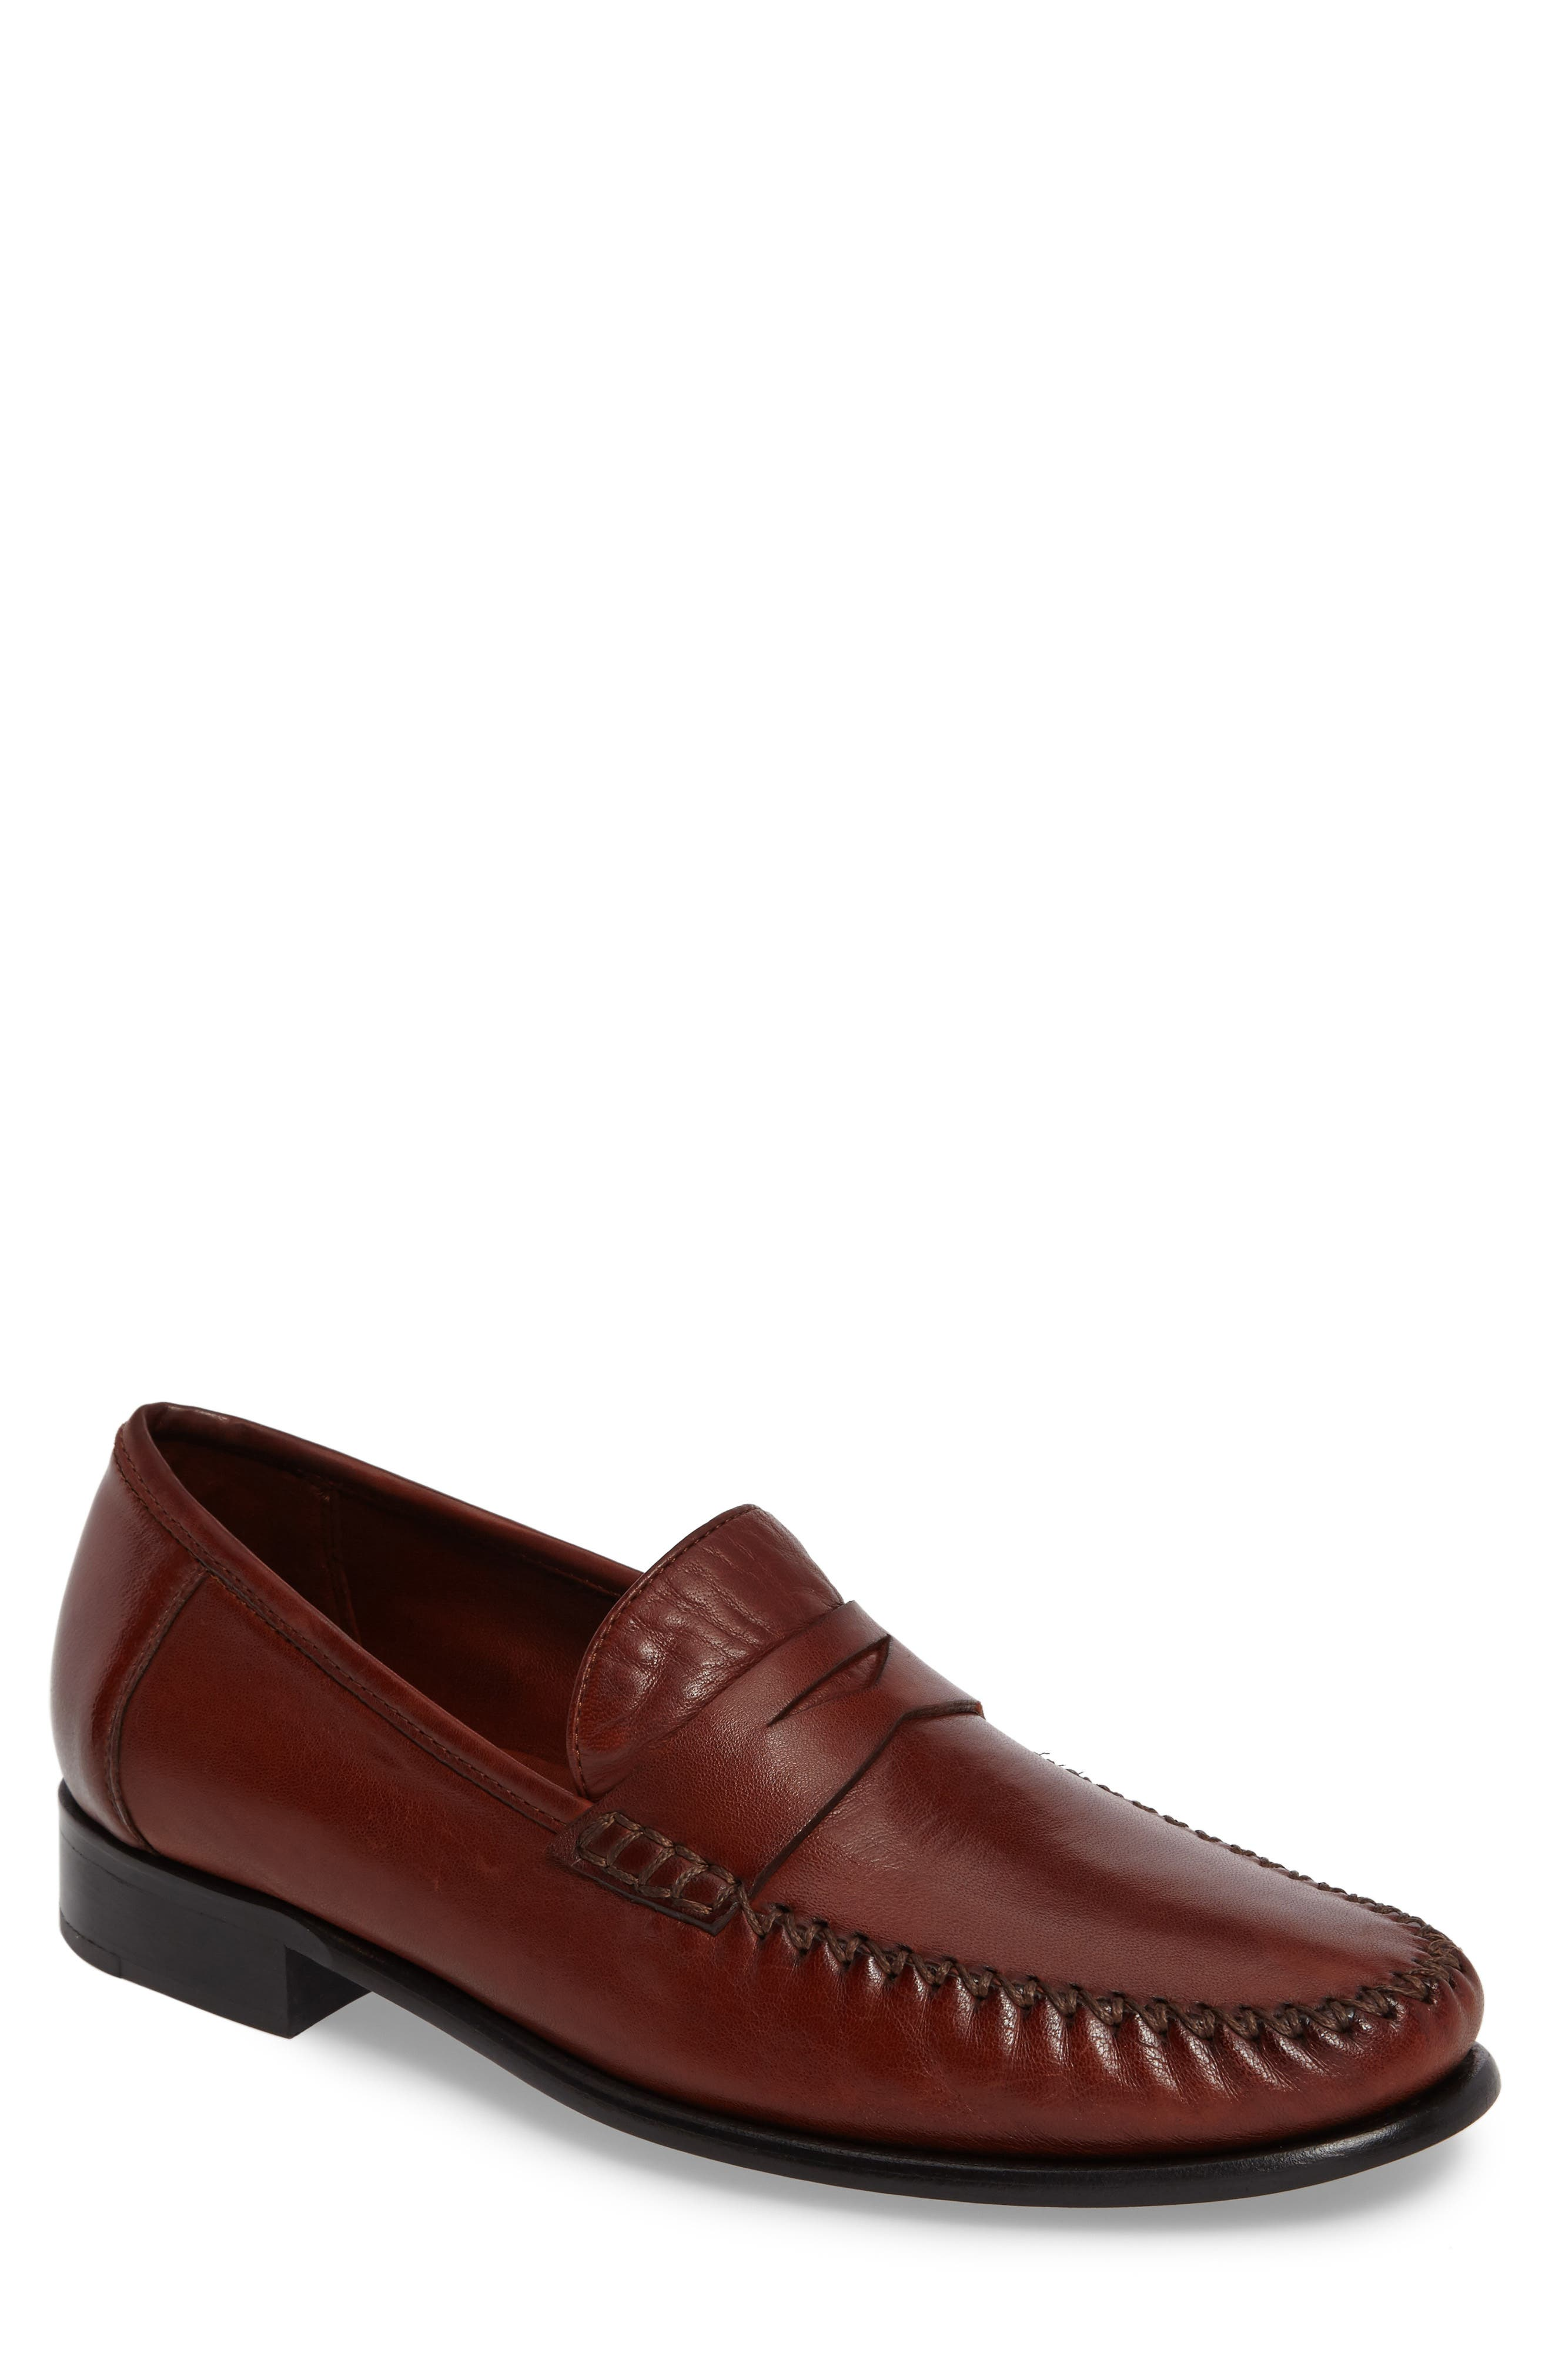 ROBERT ZUR, Penny Loafer, Main thumbnail 1, color, DARK LUGGAGE LEATHER